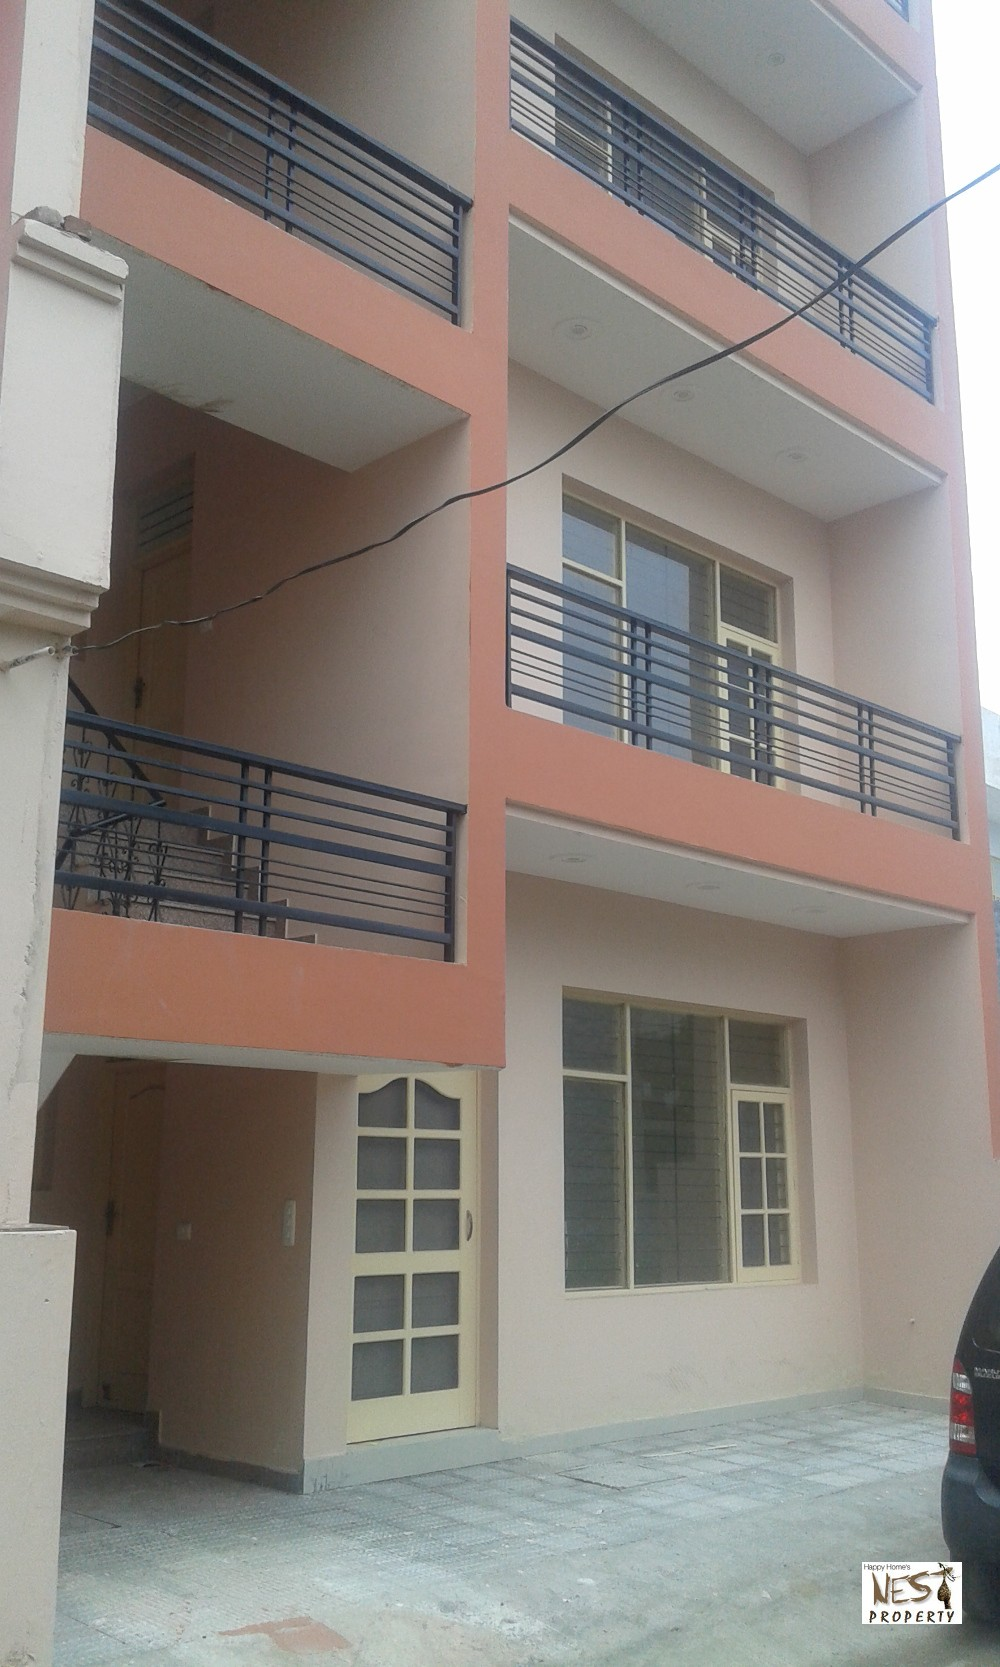 Flats for sale in chandigarh, Flats in zirakpur, Ready to move @ 20 Lac – 9888775612